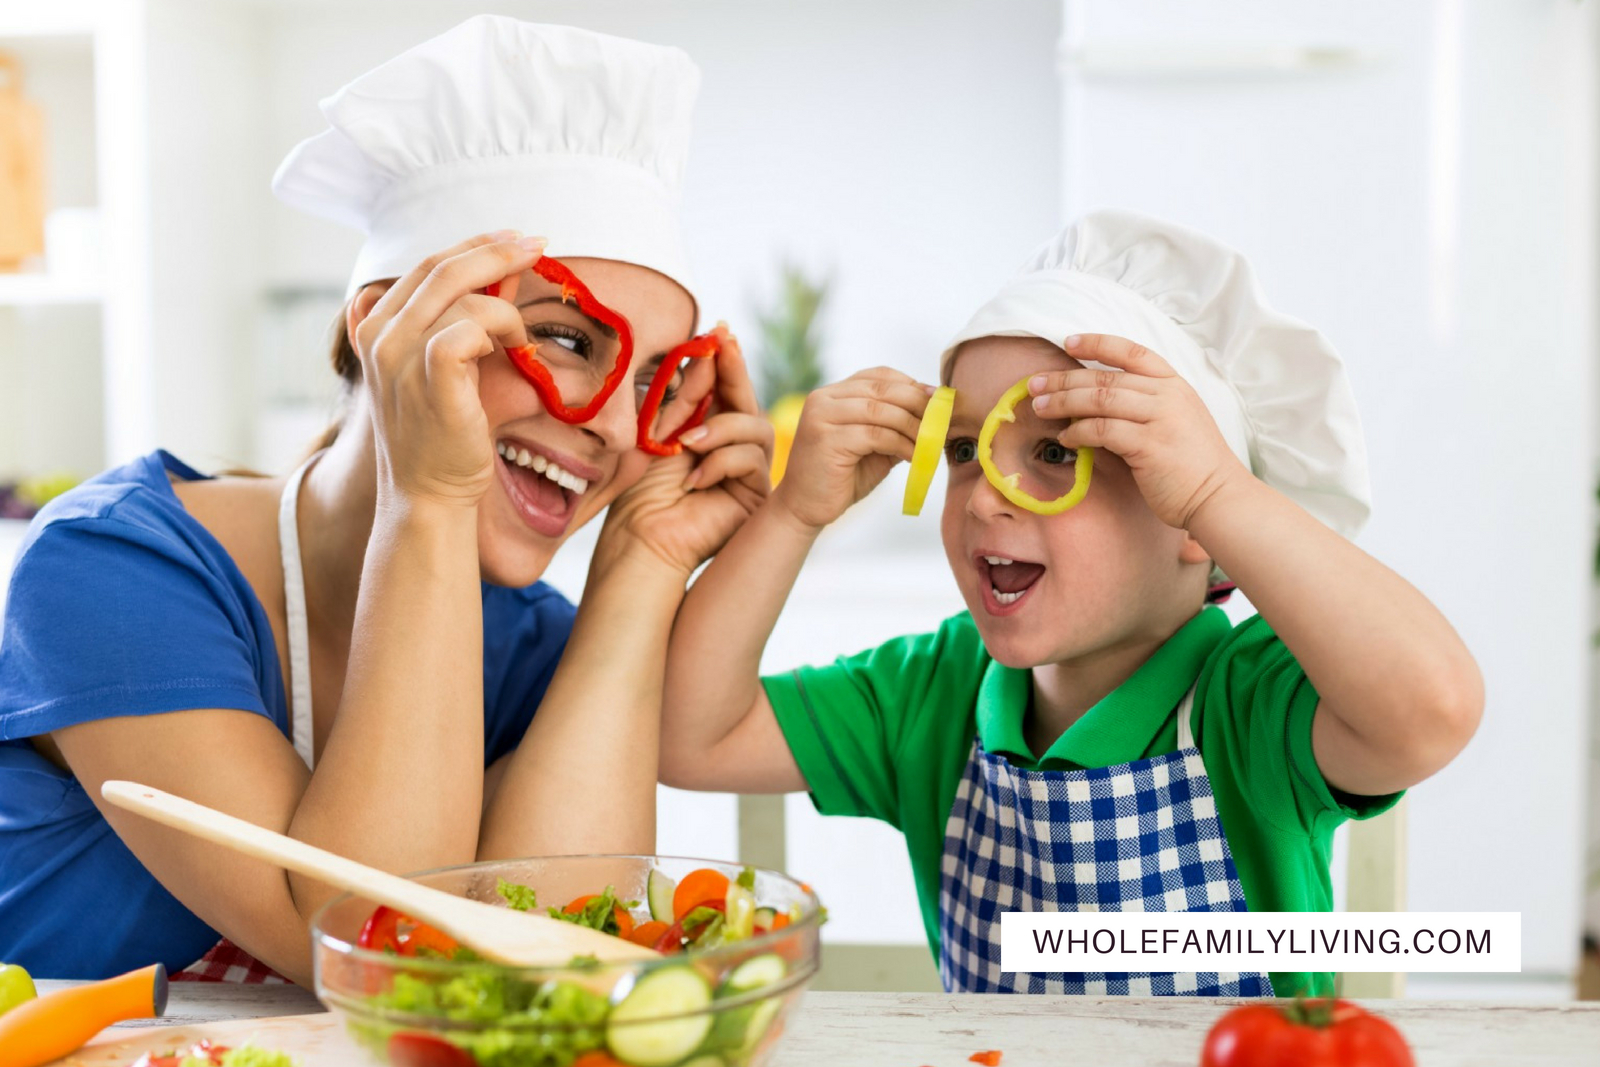 My Plate: Healthy Eating for Busy Families Made Easy. Mother and son having fun cutting up veggies in the kitchen.